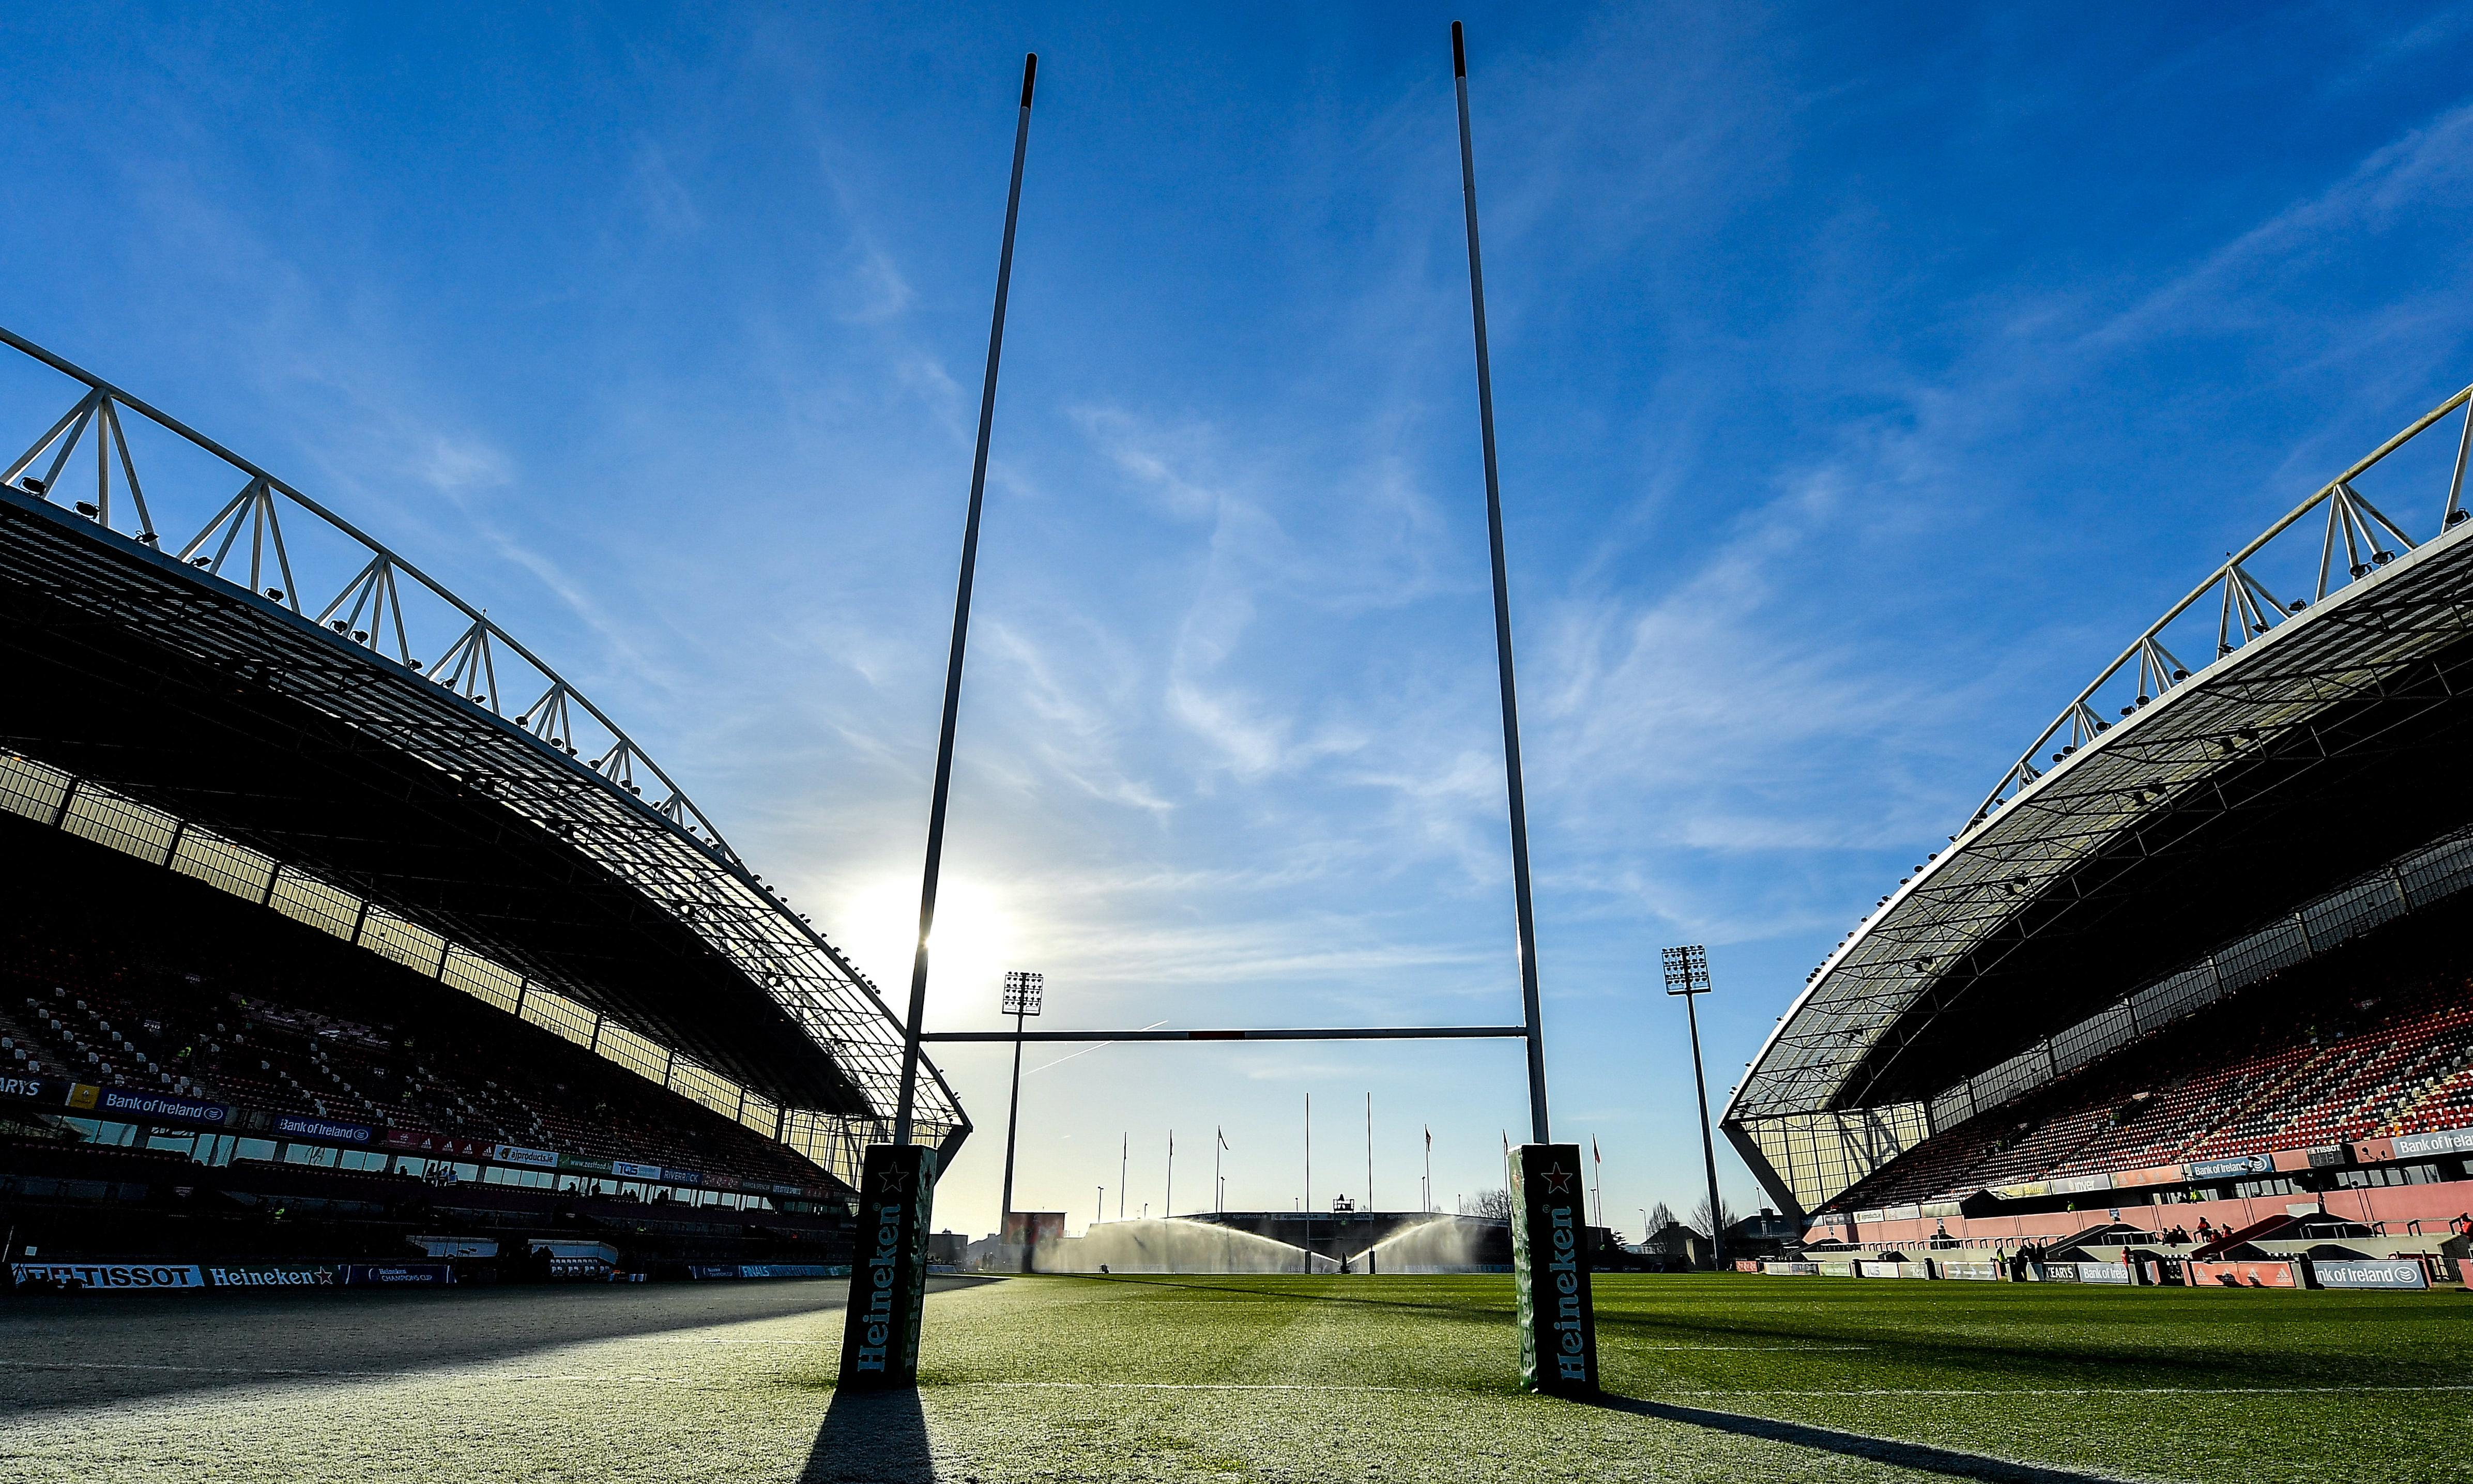 World Rugby to assess if its policies on transgender players 'are appropriate'